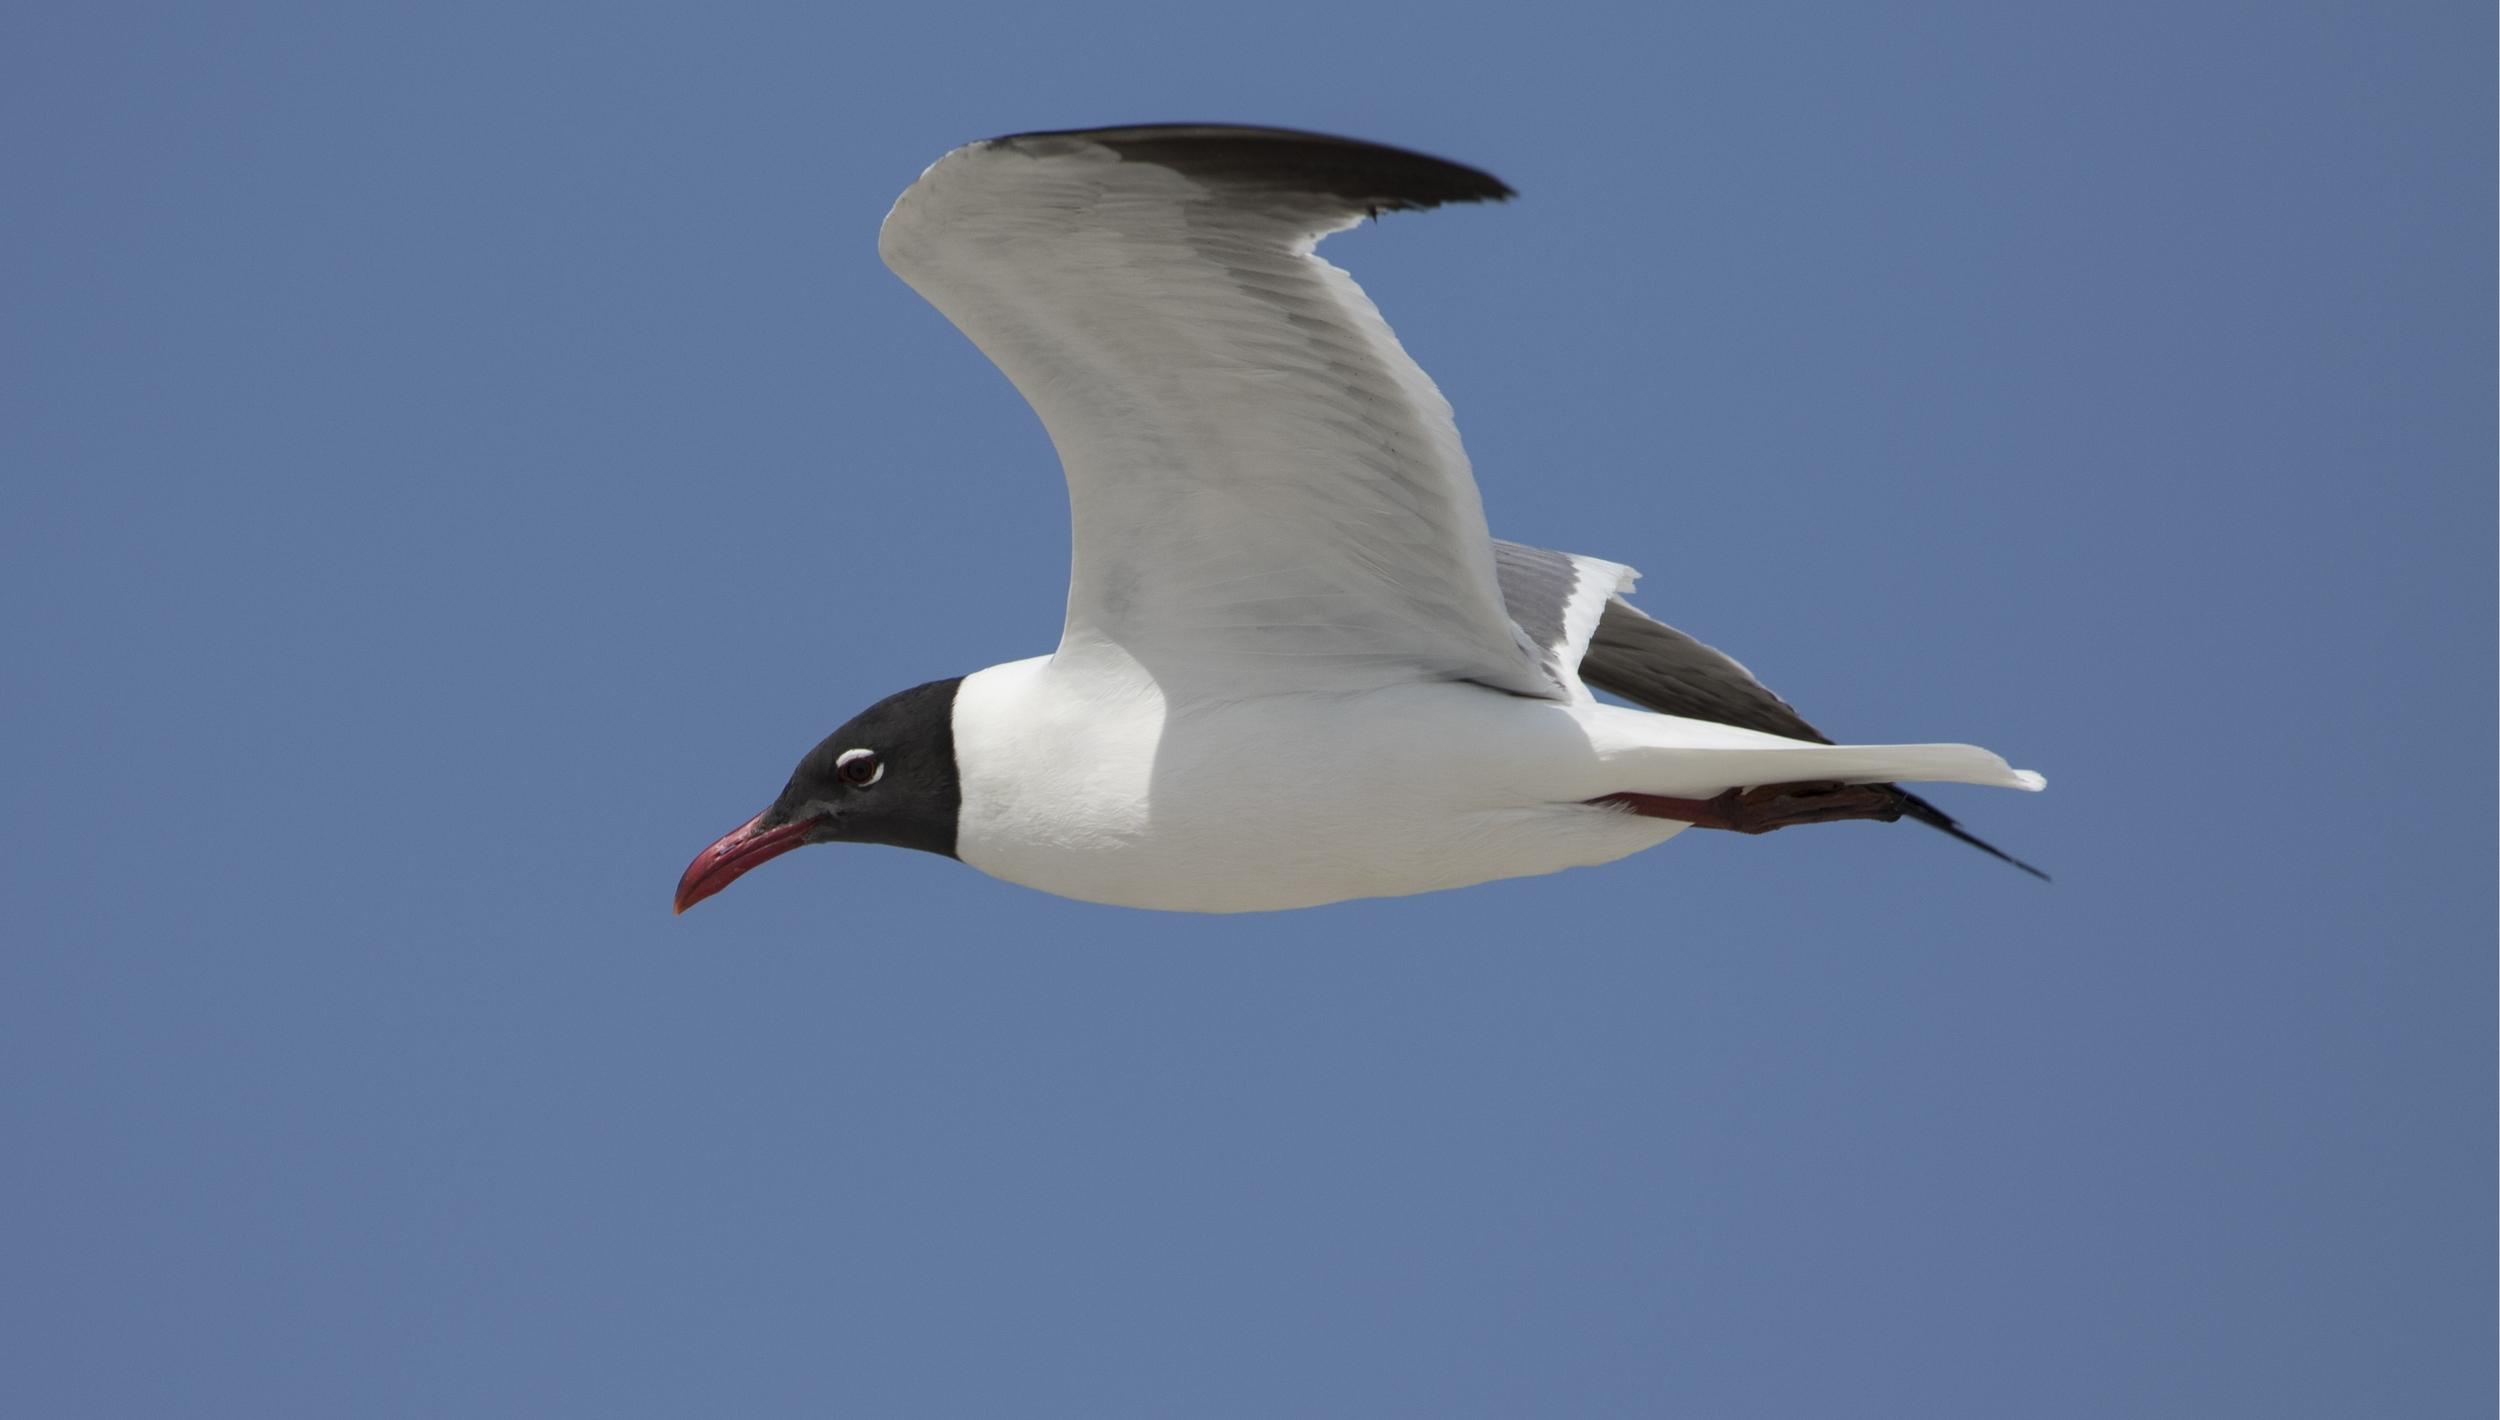 A Laughing Gull heads out to the beach to find food for the newly hatched chicks.